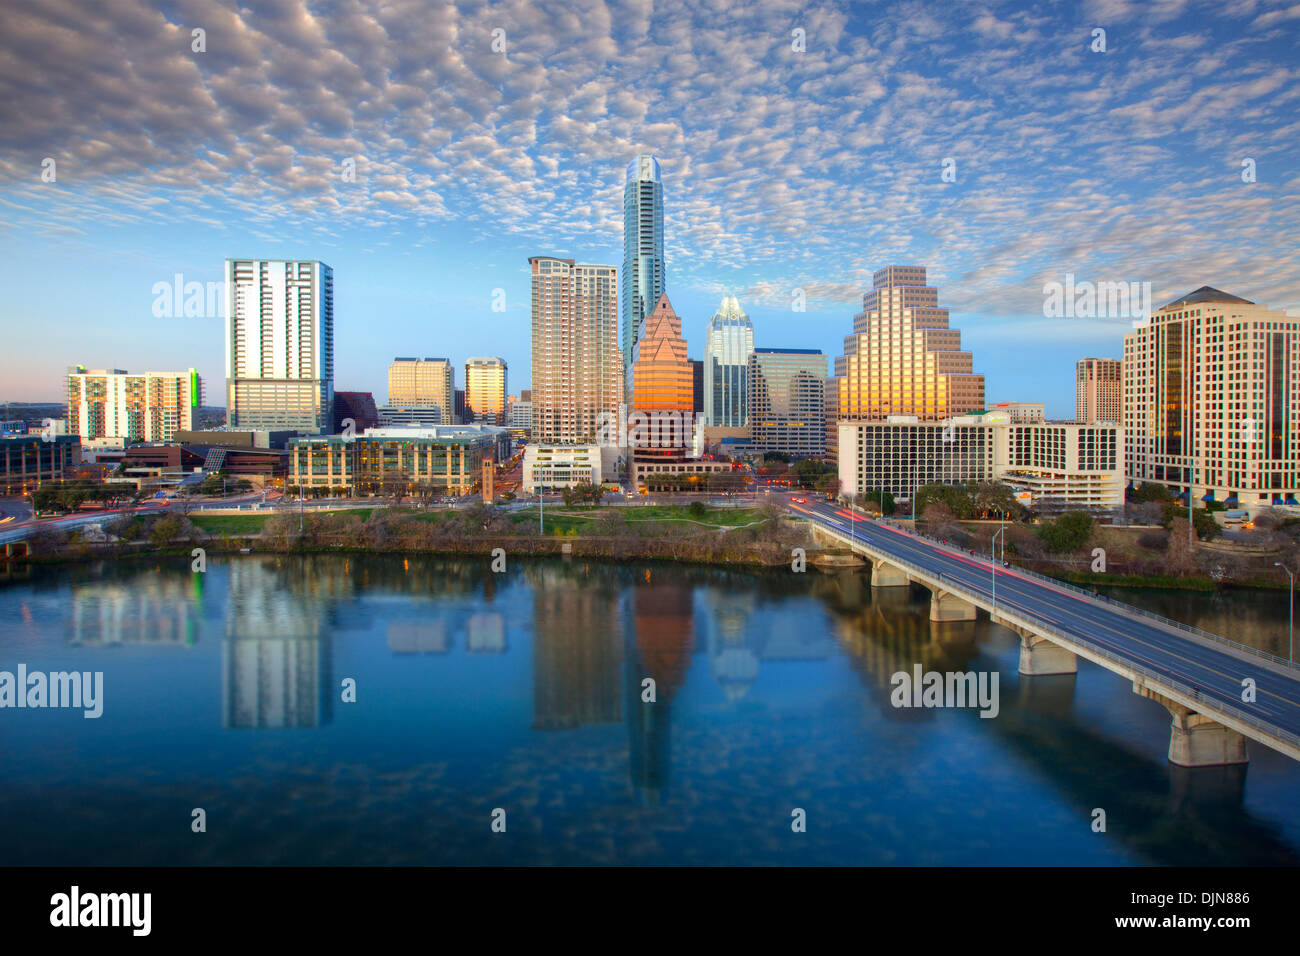 The Austin Skyline in Austin, Texas, shines on a late afternoon. The iconic Austin highrises are reflected in Lady Bird Lake. - Stock Image